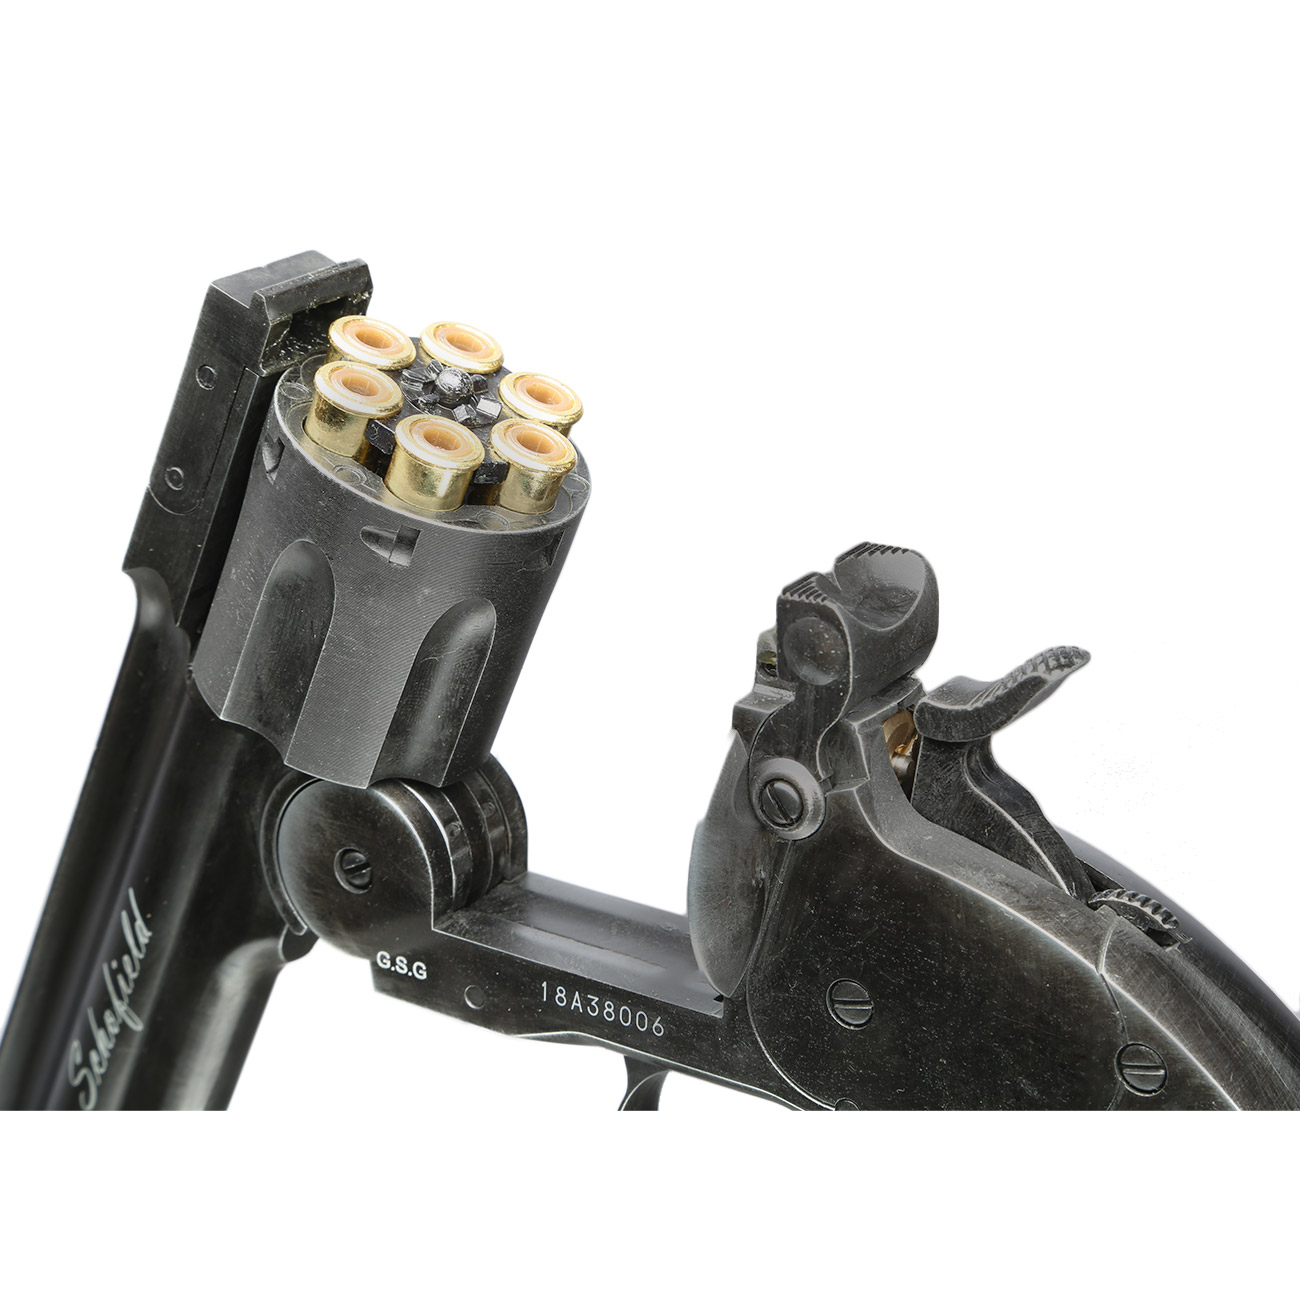 ASG Schofield 1877 6 Zoll CO2-Revolver Kal. 4,5 mm Diabolo + Stahl-BB Vollmetall aging black 3